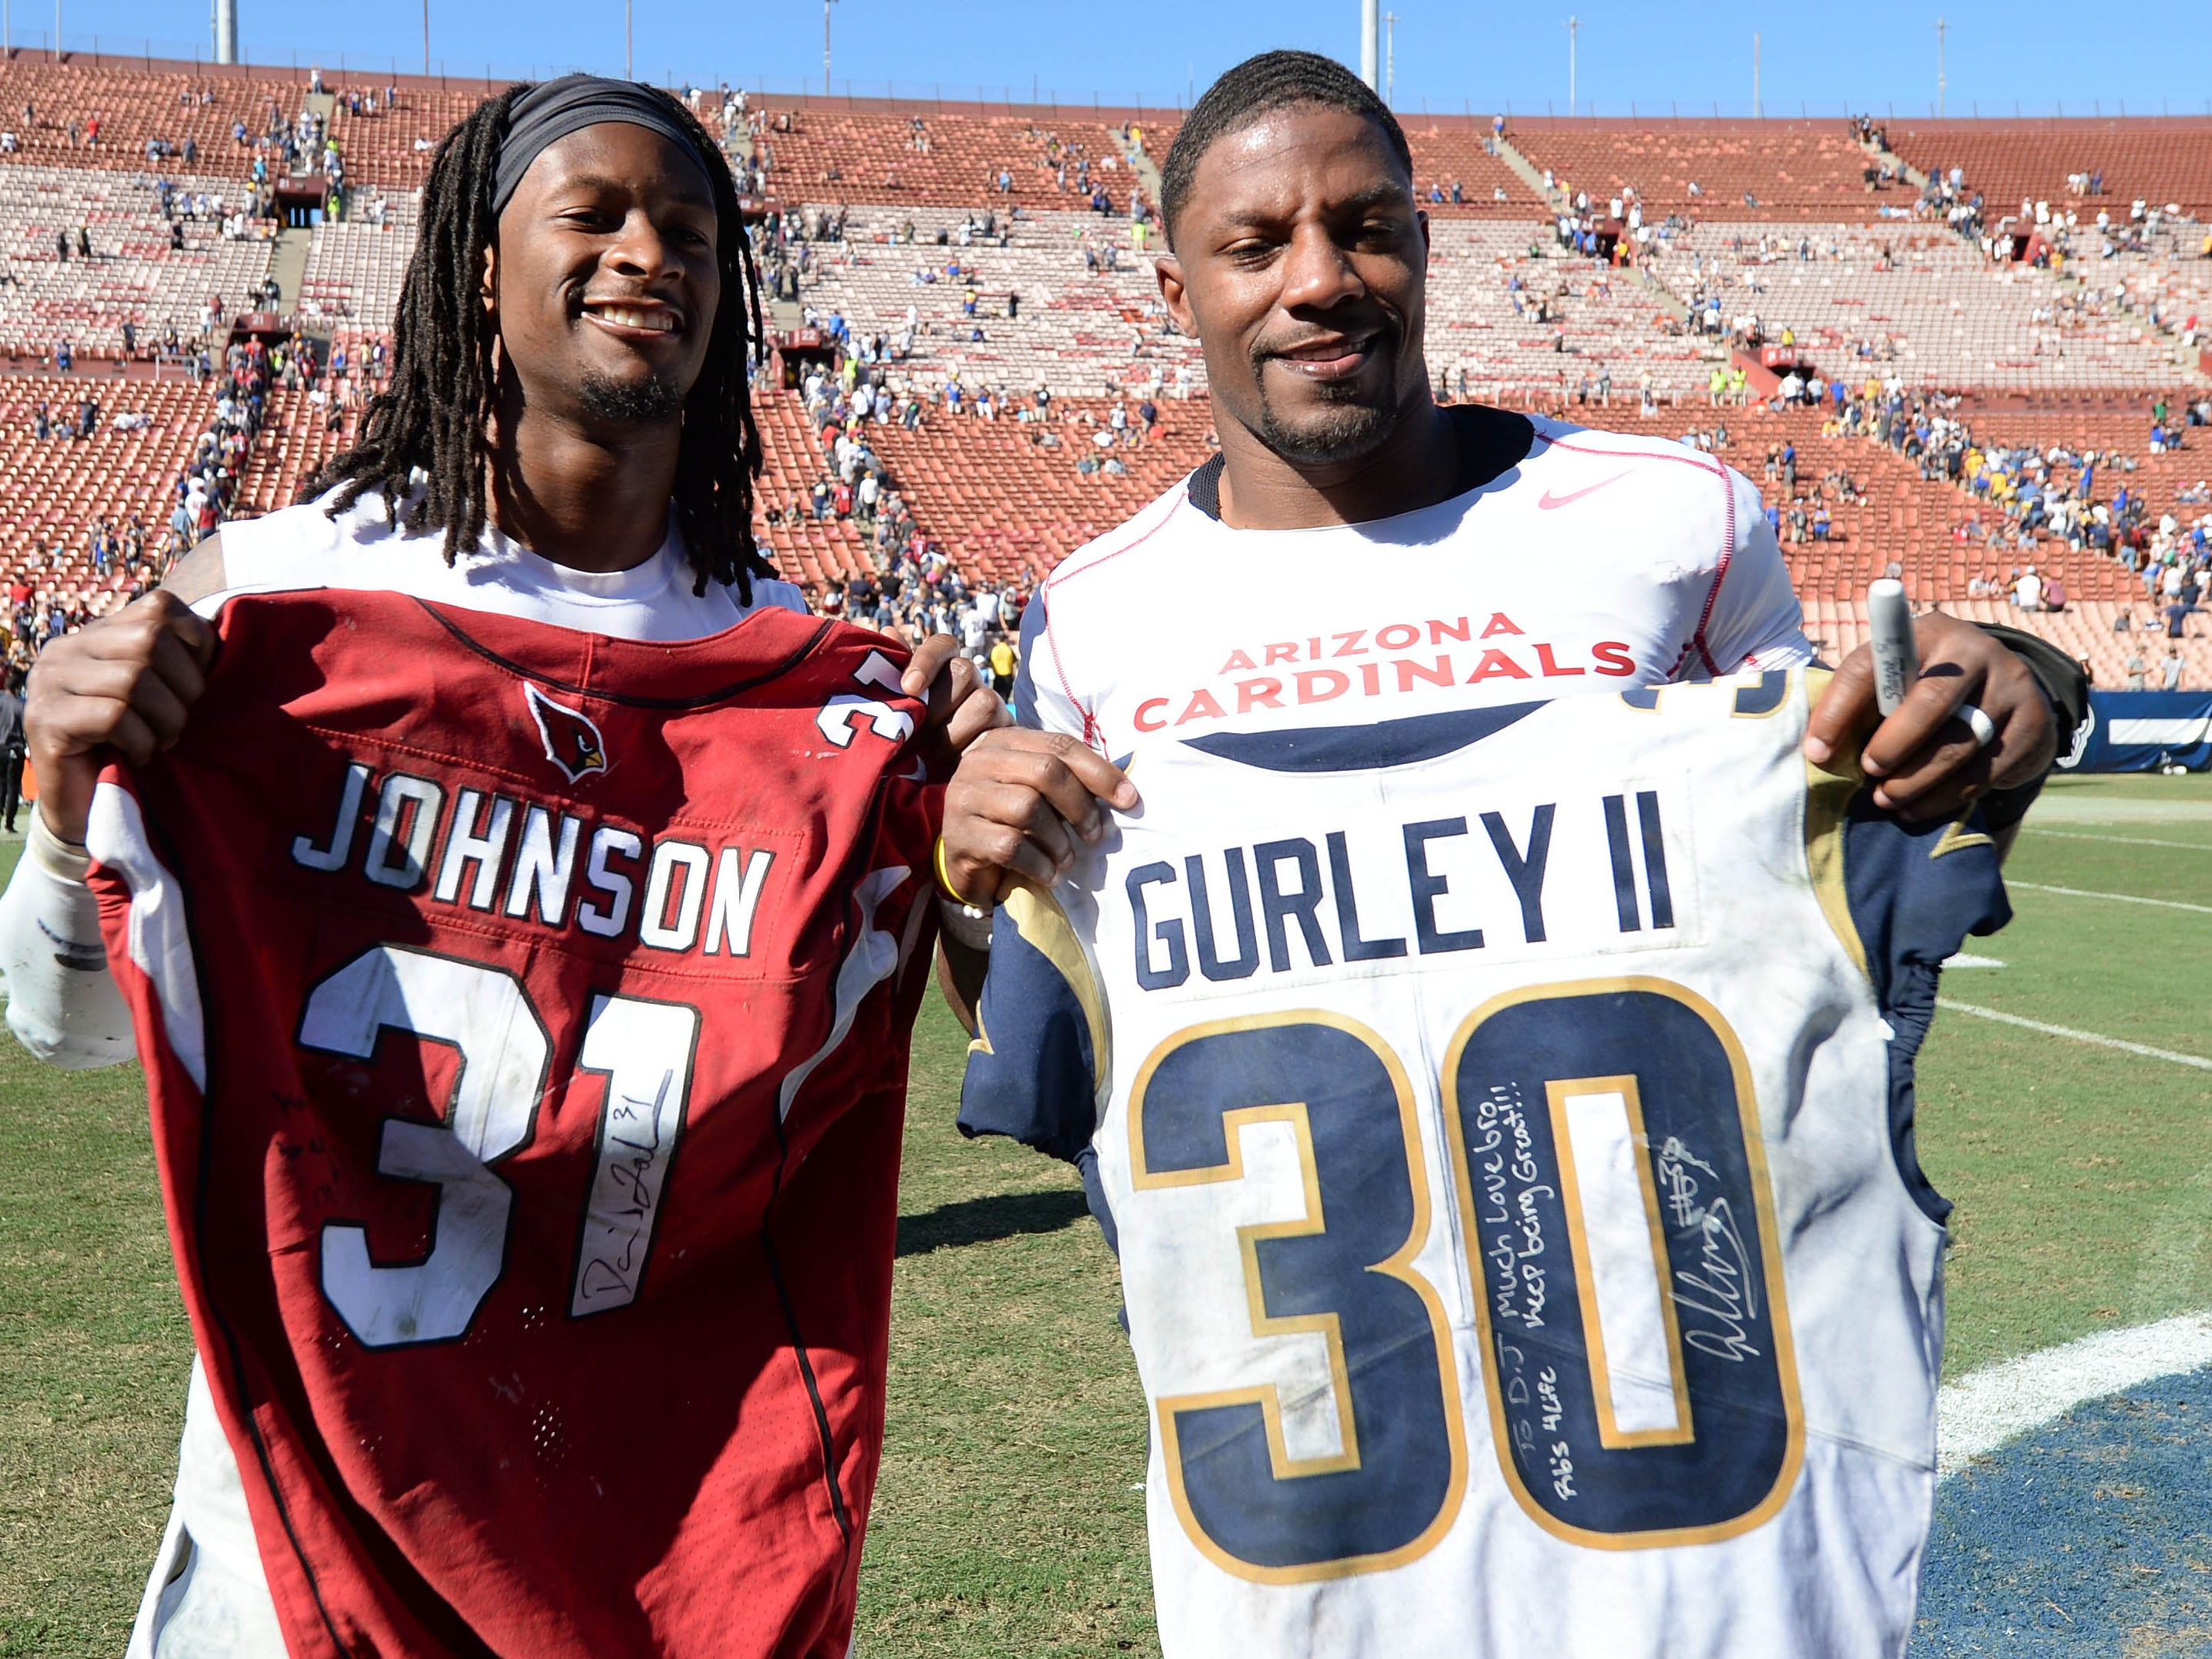 September 16, 2018; Los Angeles, CA, USA; Los Angeles Rams running back Todd Gurley (30) and Arizona Cardinals running back David Johnson (31) pose for a photo after exchanging jerseys following the game at the Los Angeles Memorial Coliseum. Mandatory Credit: Gary A. Vasquez-USA TODAY Sports